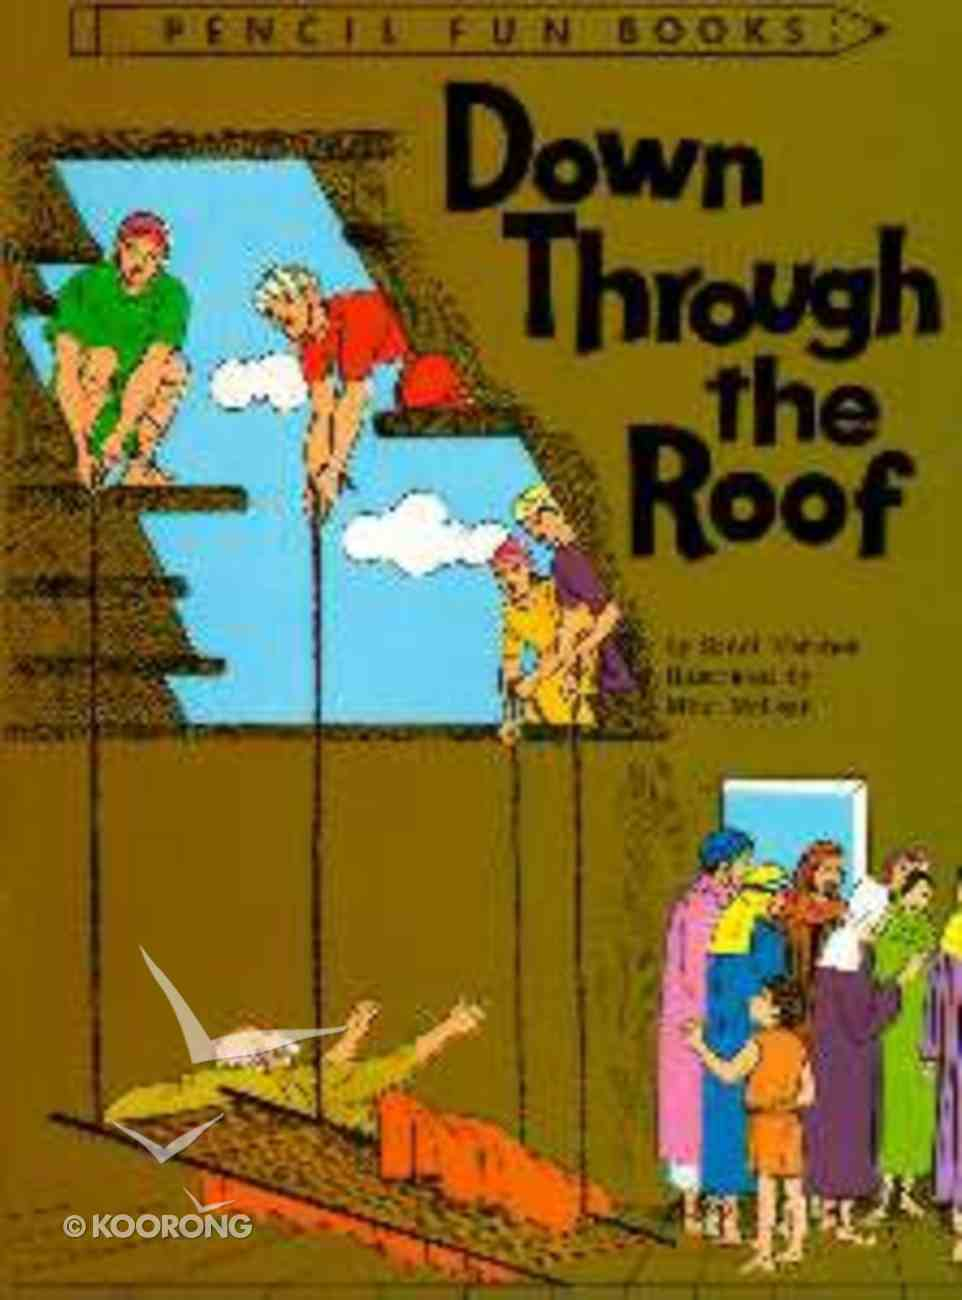 Down Throught the Roof (Pencil Fun Books Series) Paperback